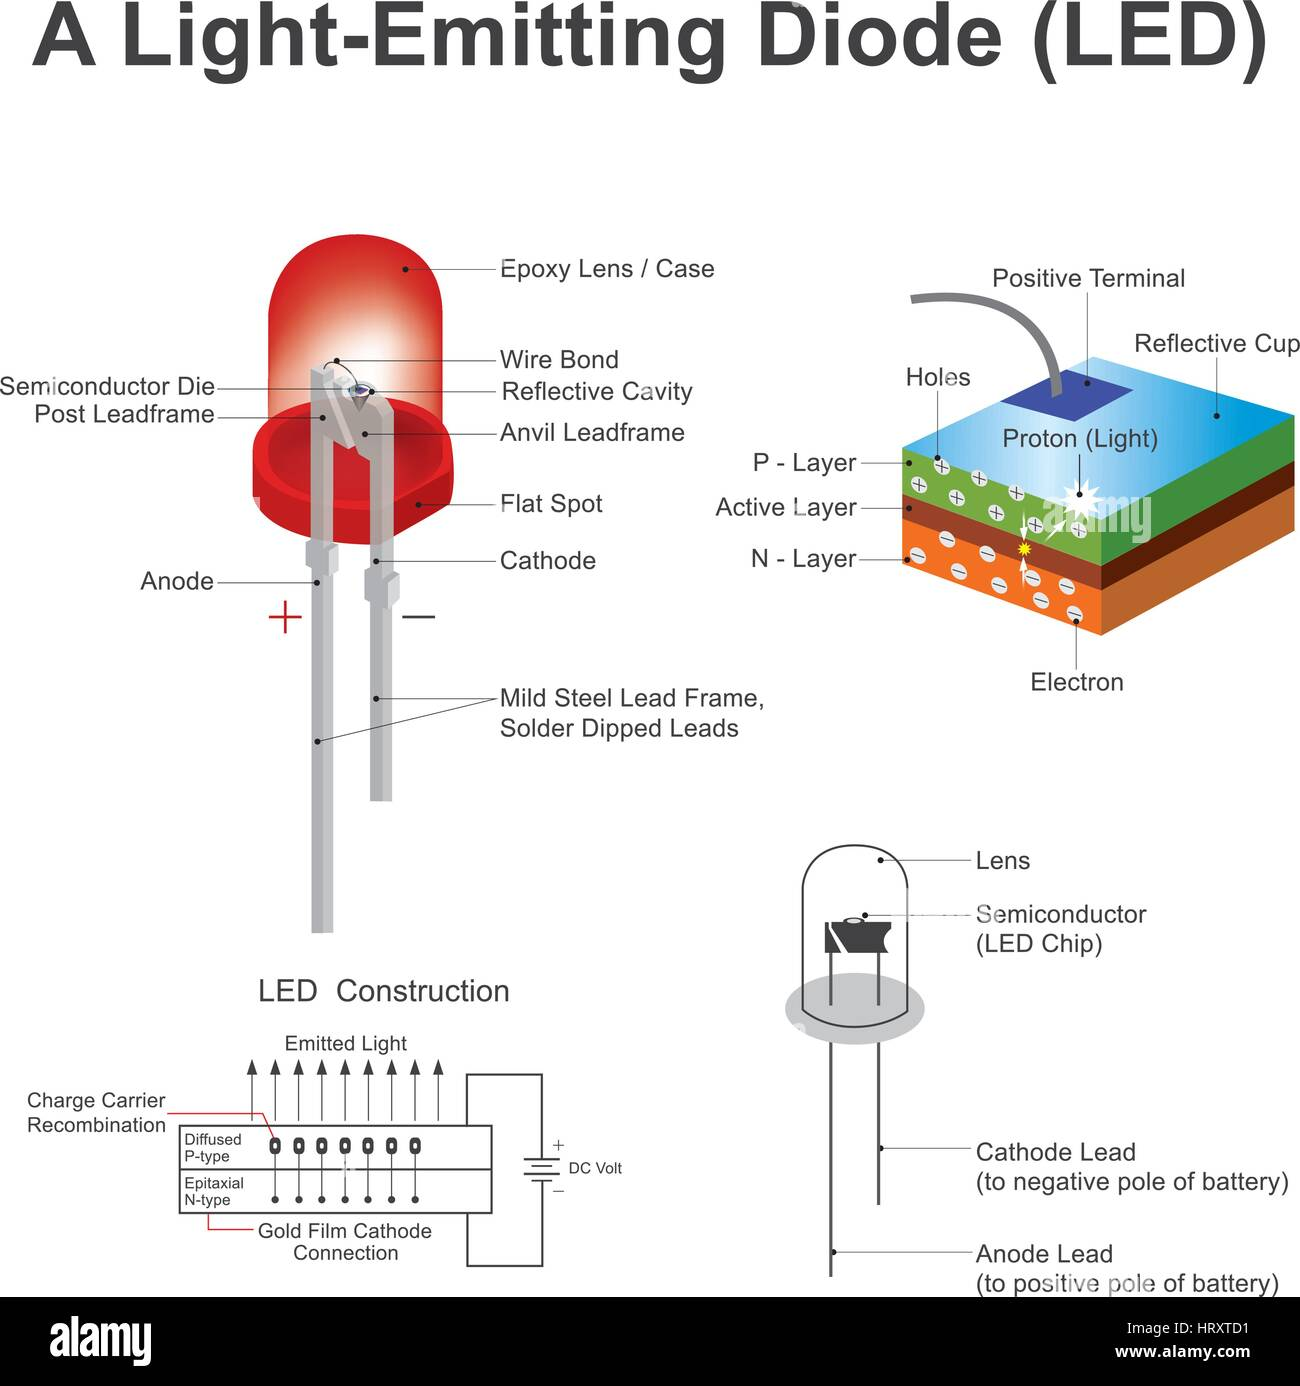 A light emitting diode led is a two lead semiconductor light a light emitting diode led is a two lead semiconductor light source electrons are able to recombine with electron holes within the device releasin pooptronica Images